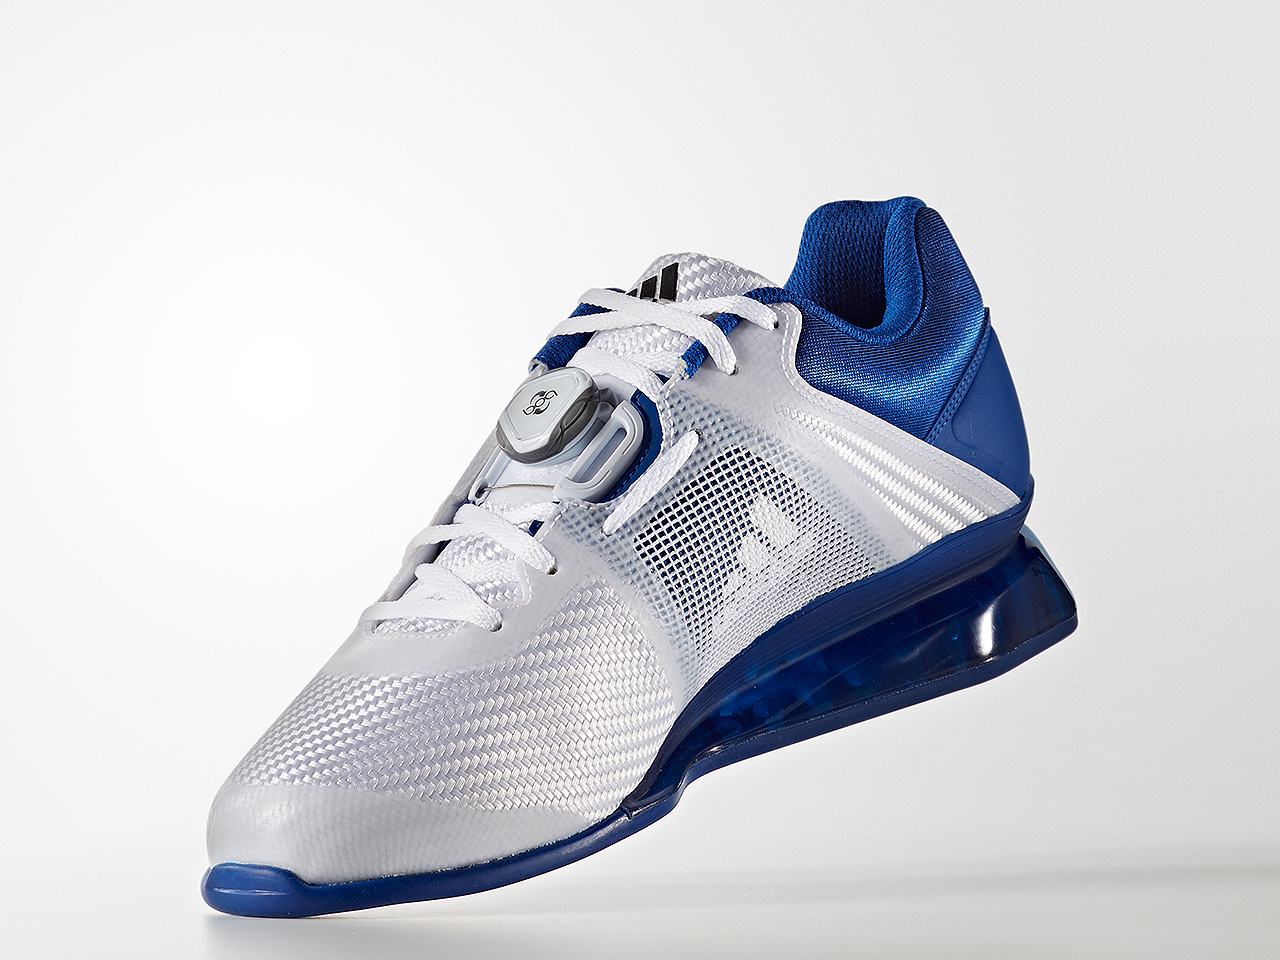 0acfa6426 Here s a Close Look at Adidas  Leistung 16.II and Crazy Power Training Shoes